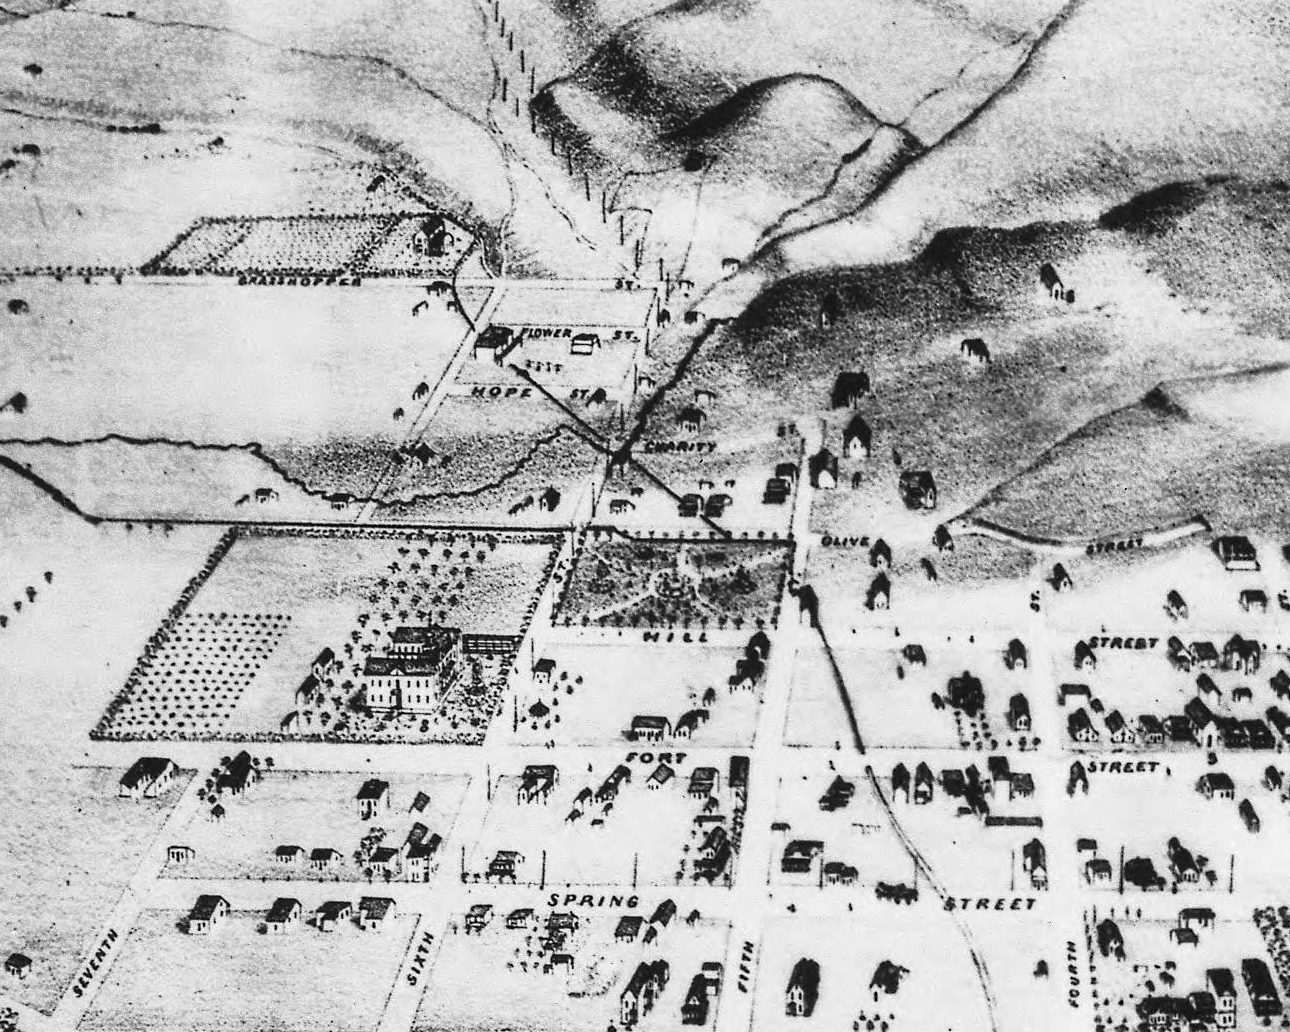 Inset of the park area in 1871. Mary's house is just to the right (north) of the park.